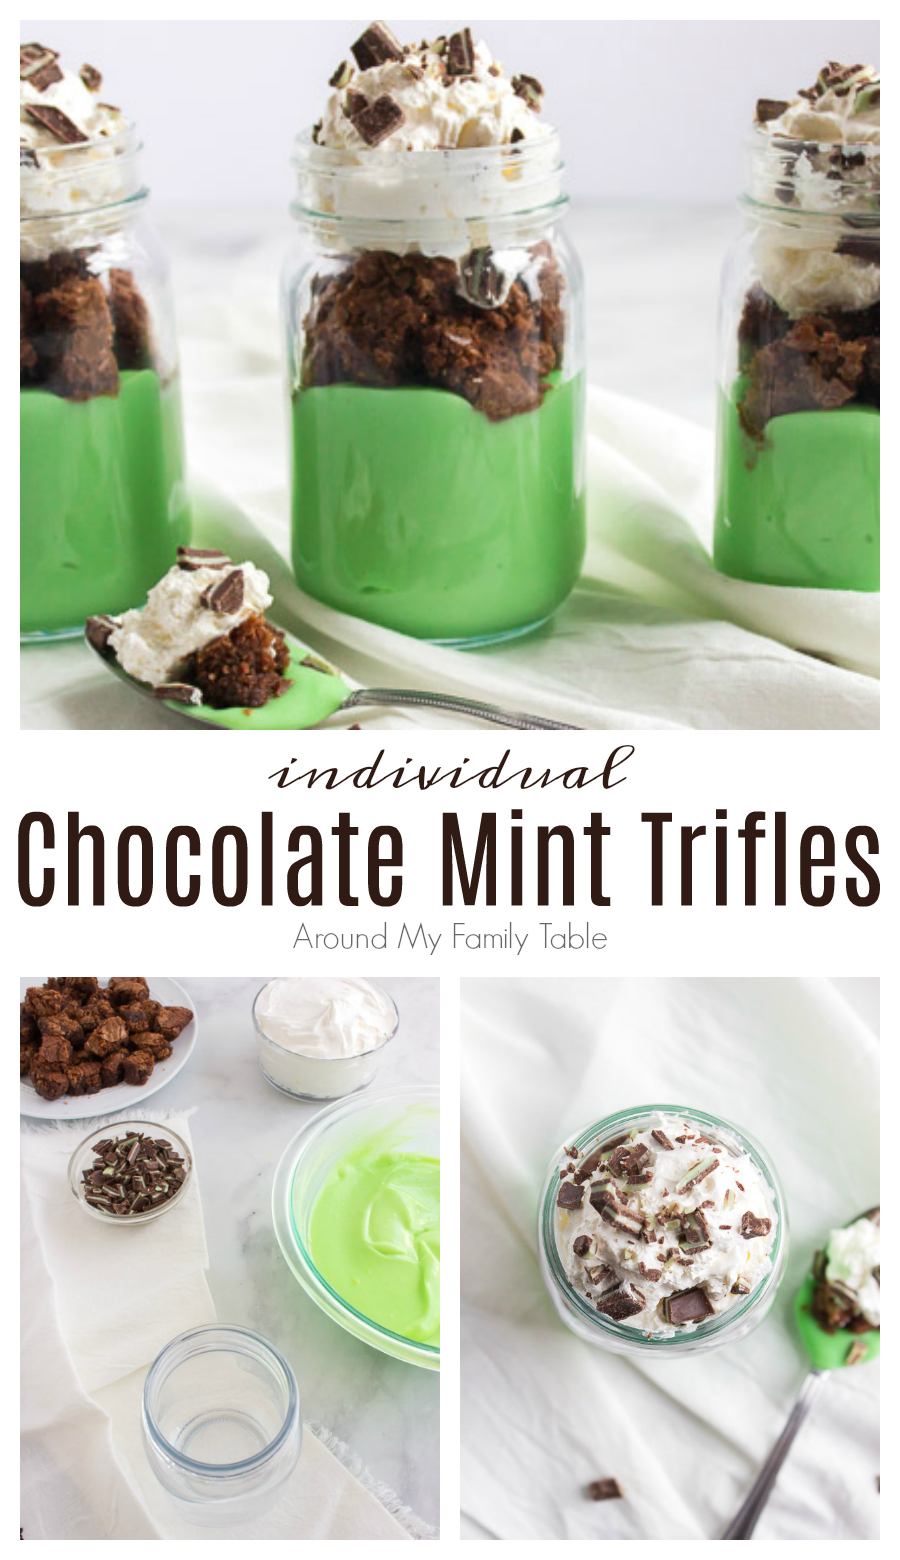 This easy Chocolate Mint Trifle Recipe is the perfect addition to any March festivities, but it's great year round too. All you need is some homemade brownies, pudding, chocolate mints, and a little whipped cream for this fun dessert. via @slingmama